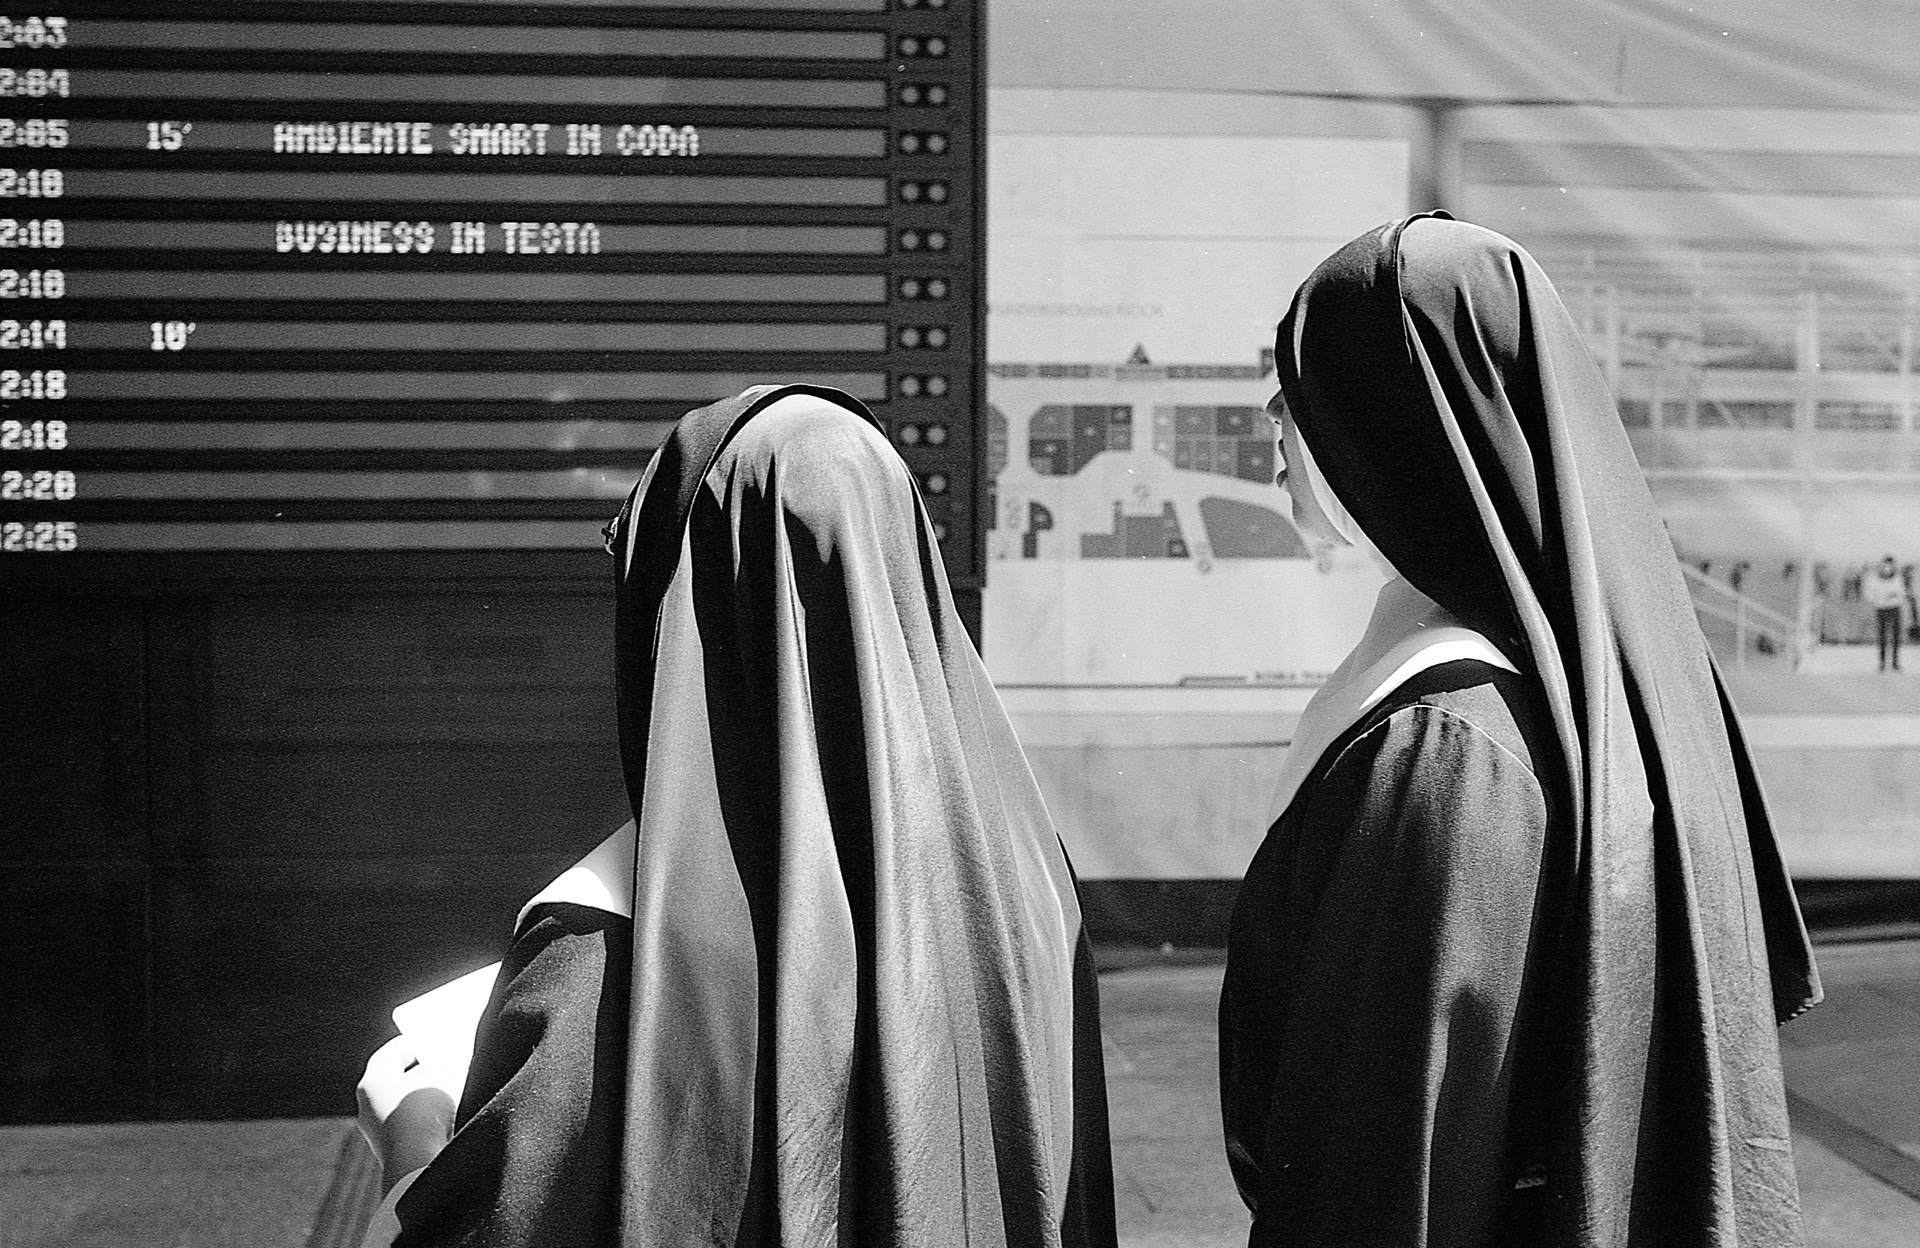 Portrait of Nuns at Rome Termini Station